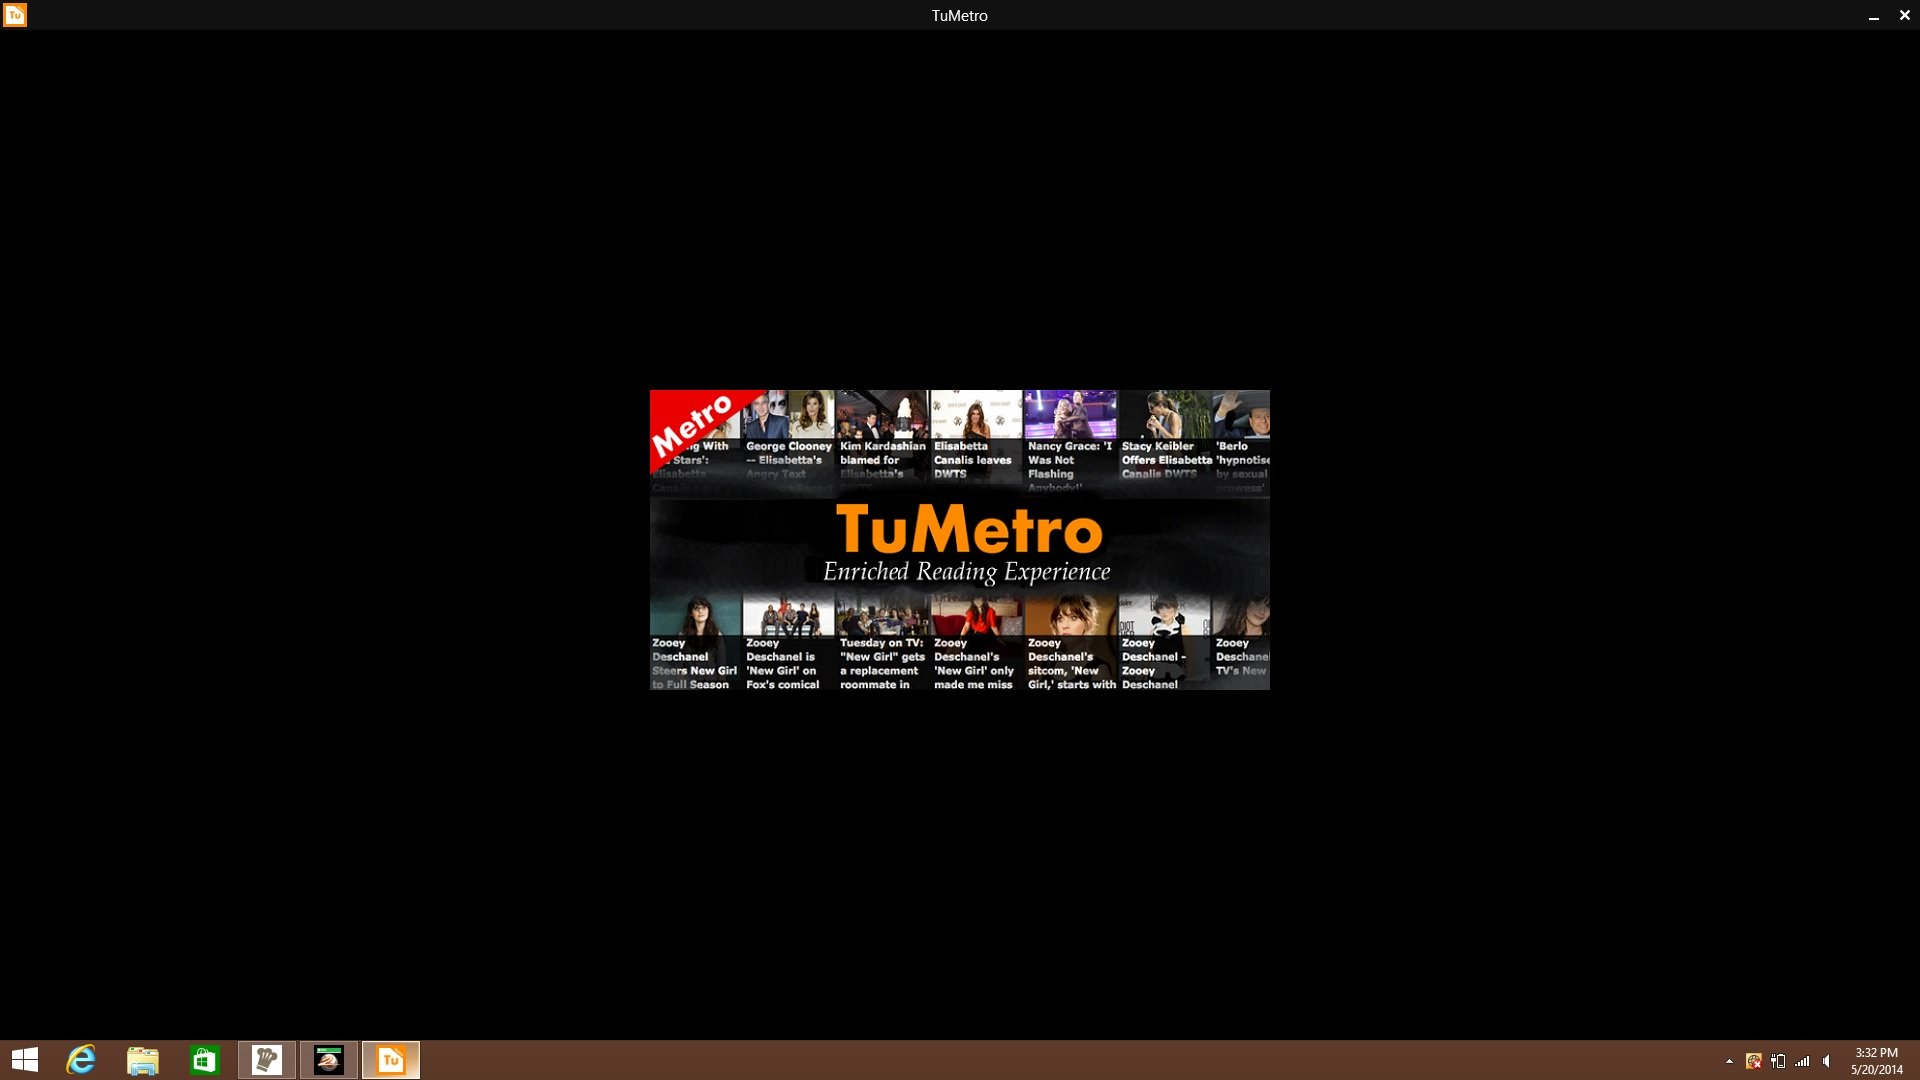 A screenshot of the Tu Metro app.